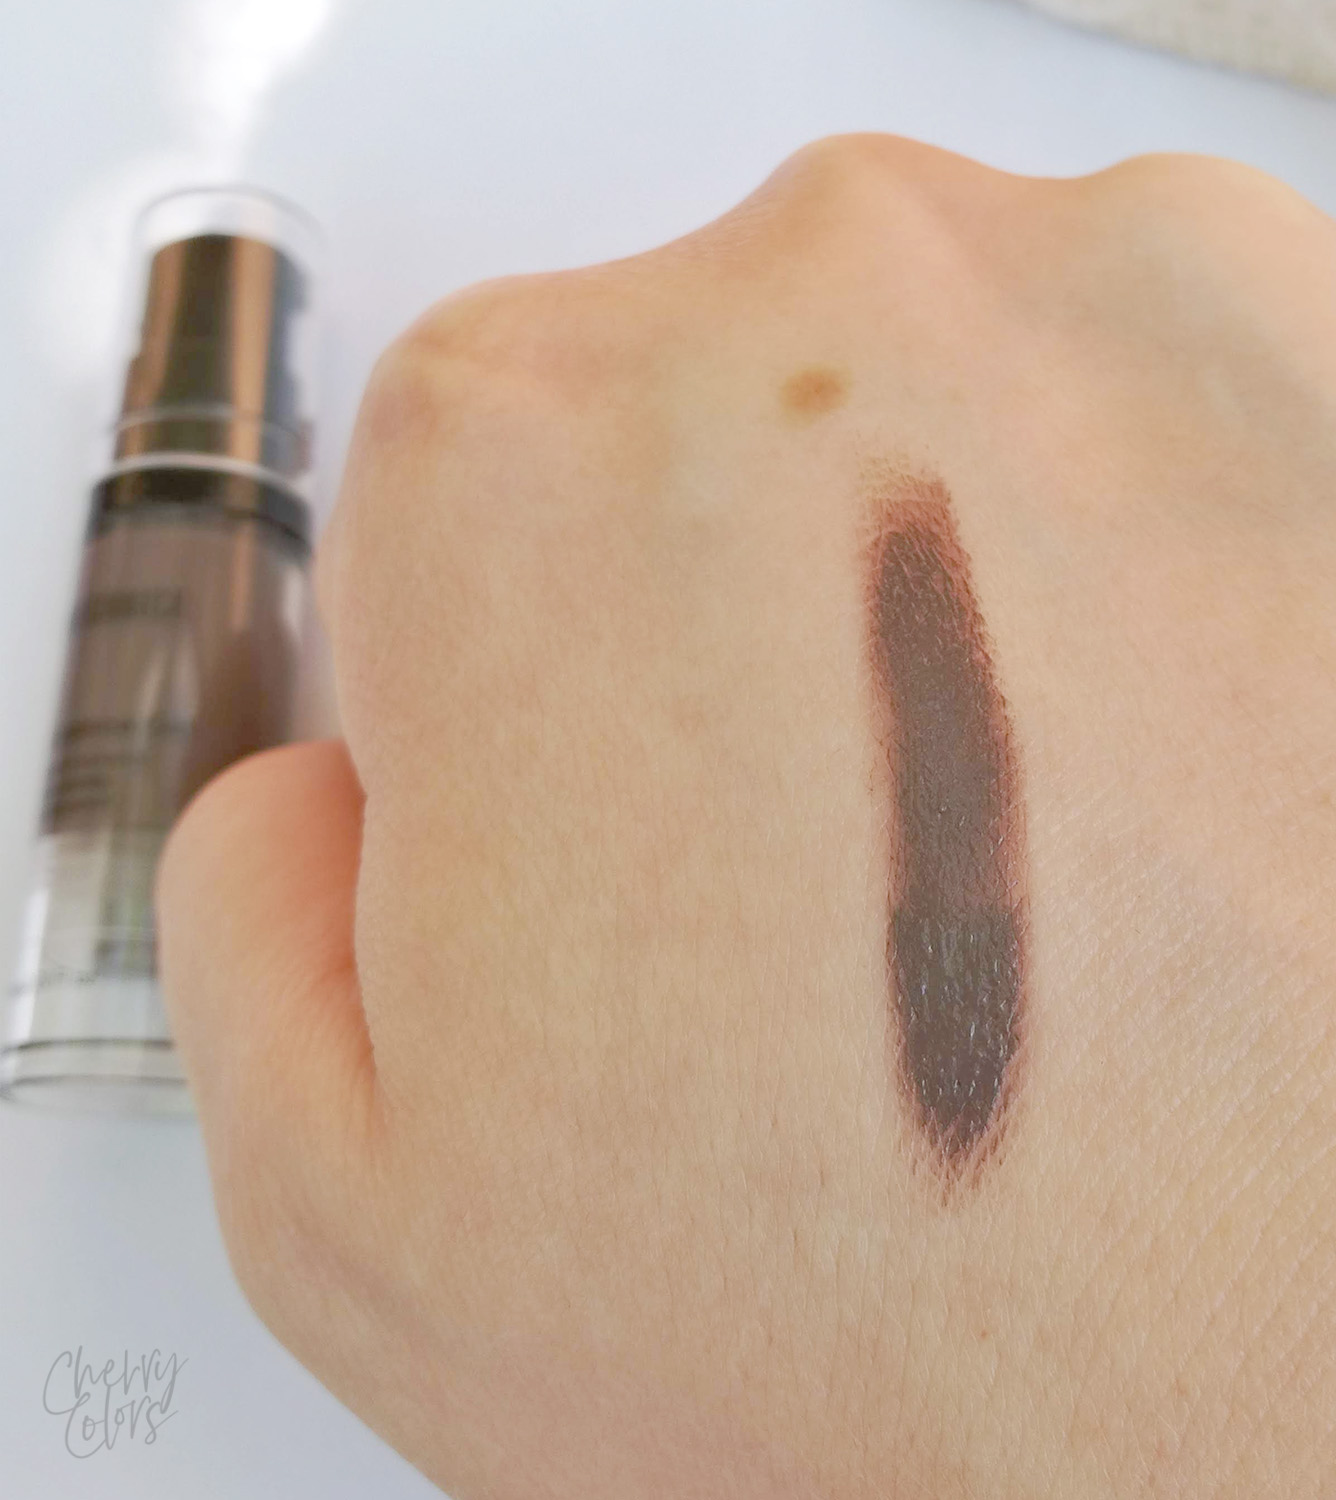 BONNIE CHOICE WATERPROOF EYEBROW GEL